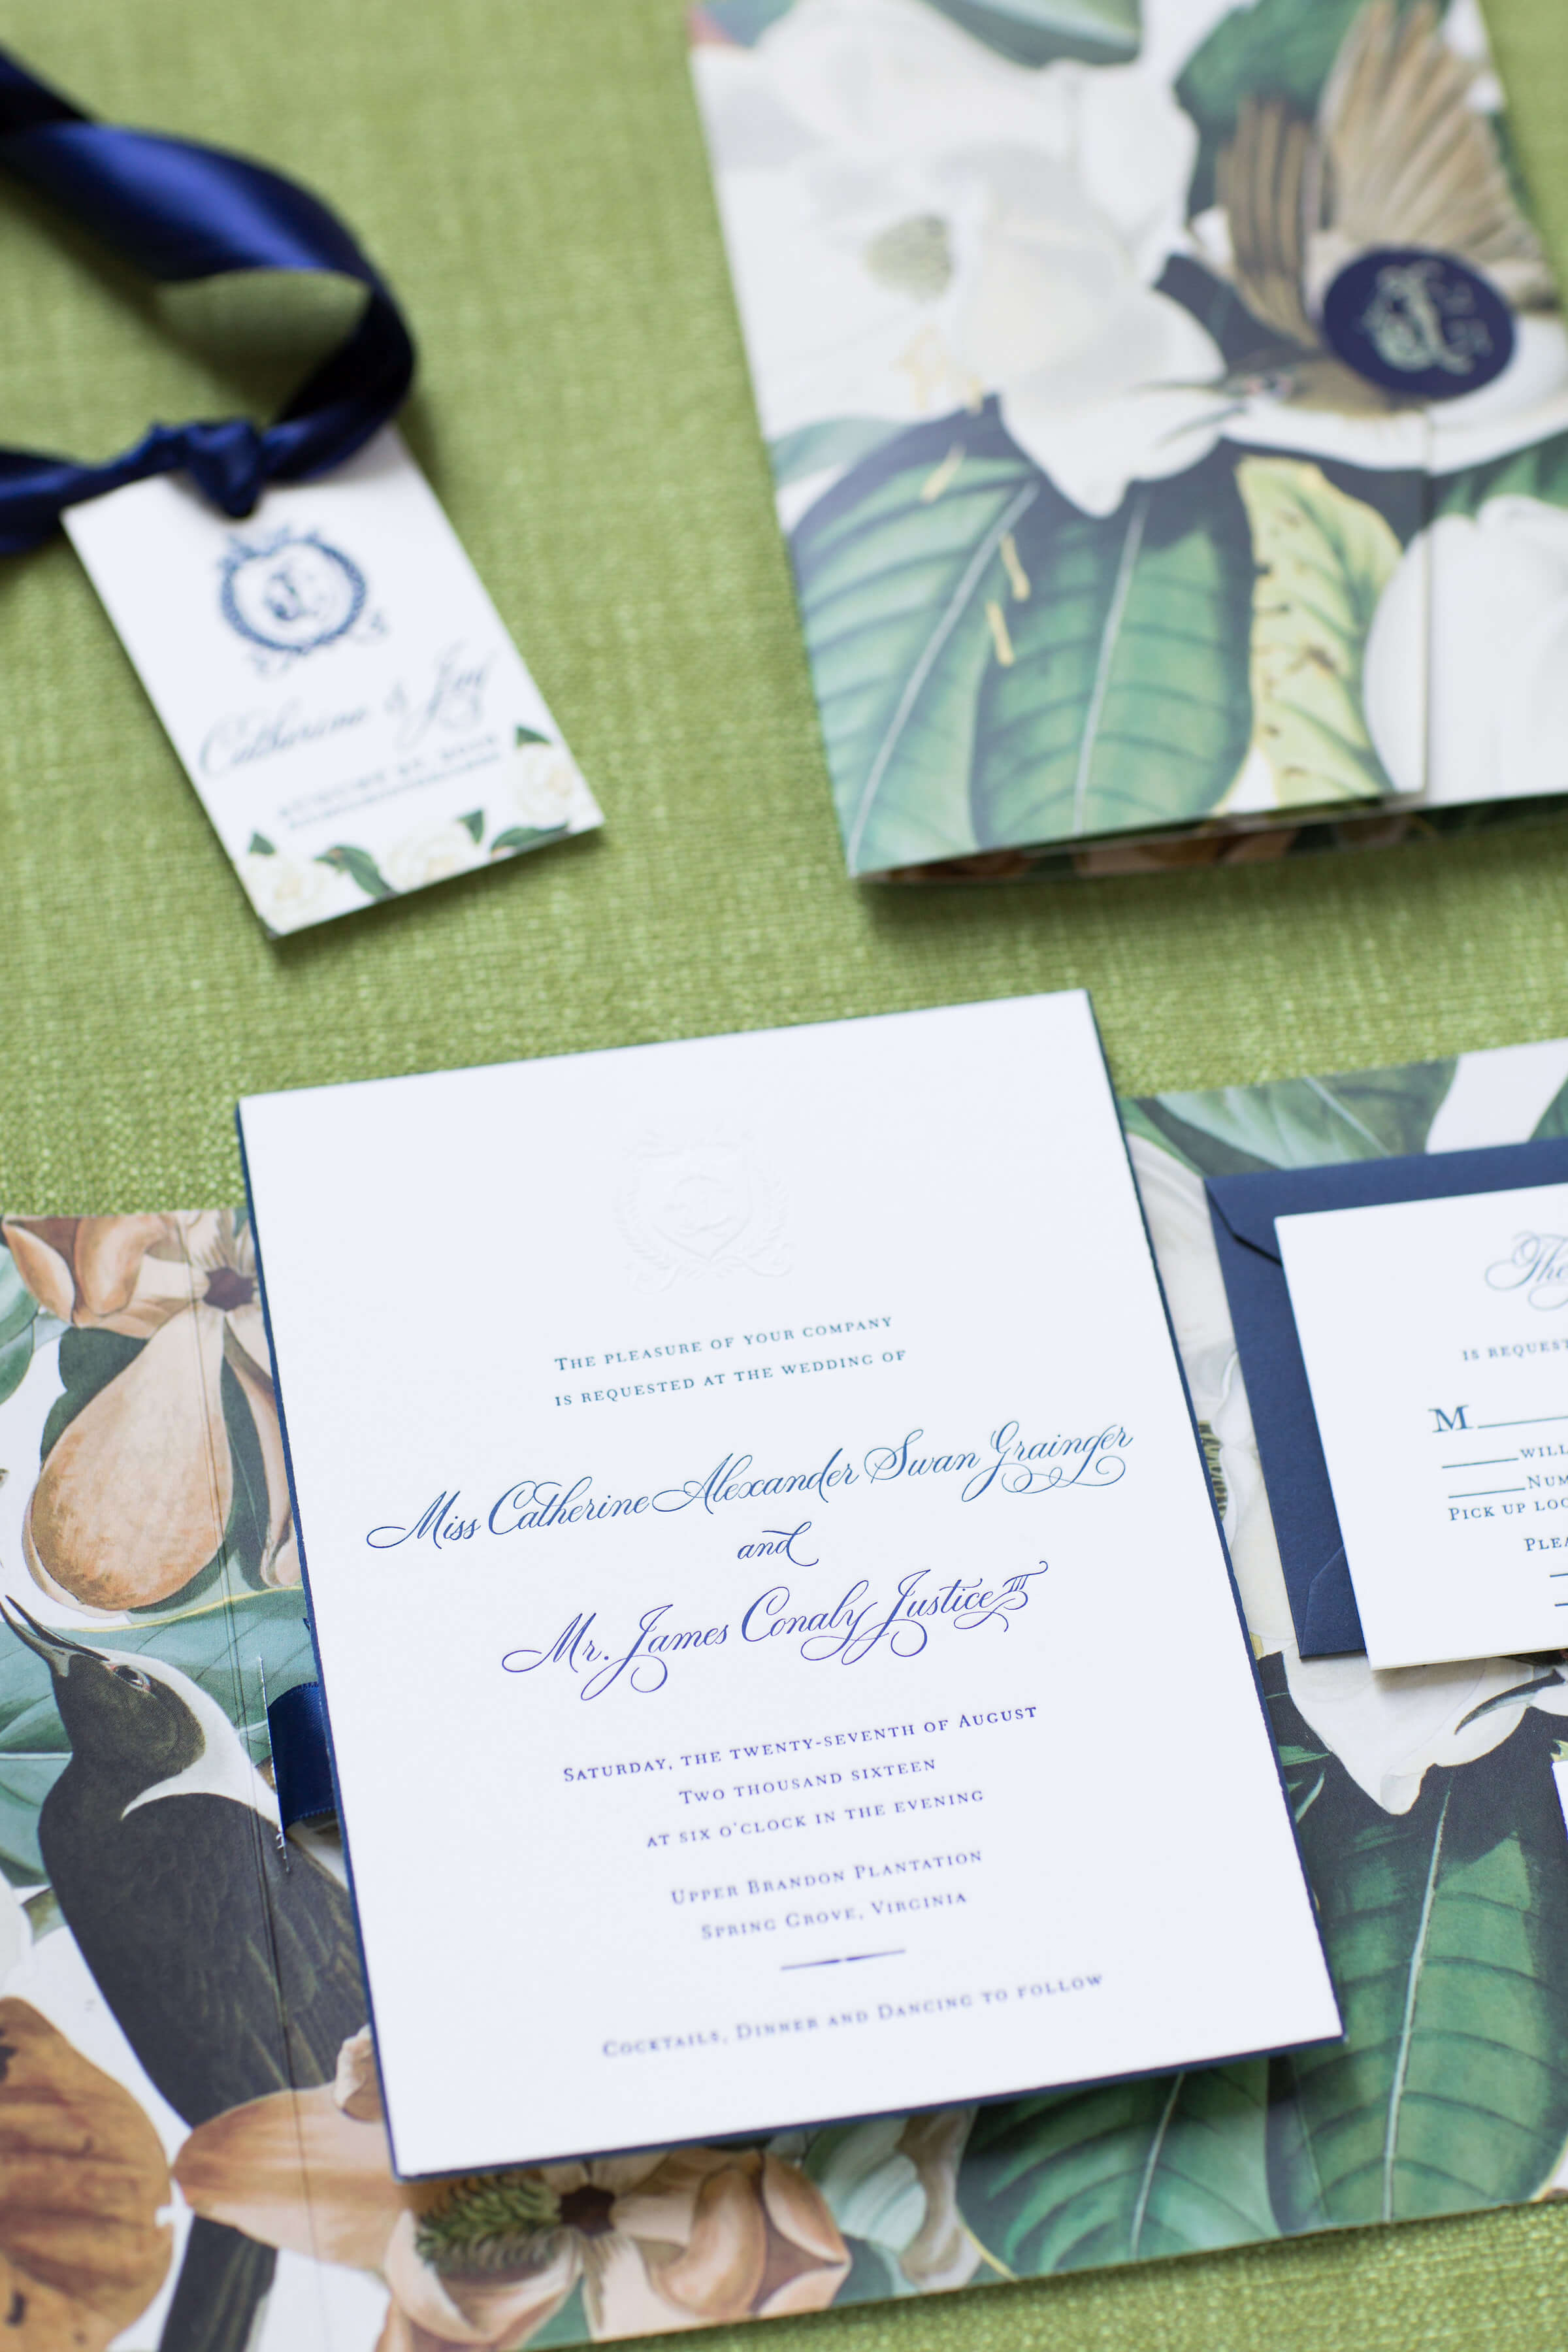 letterepress wedding invitations with wedding monogram